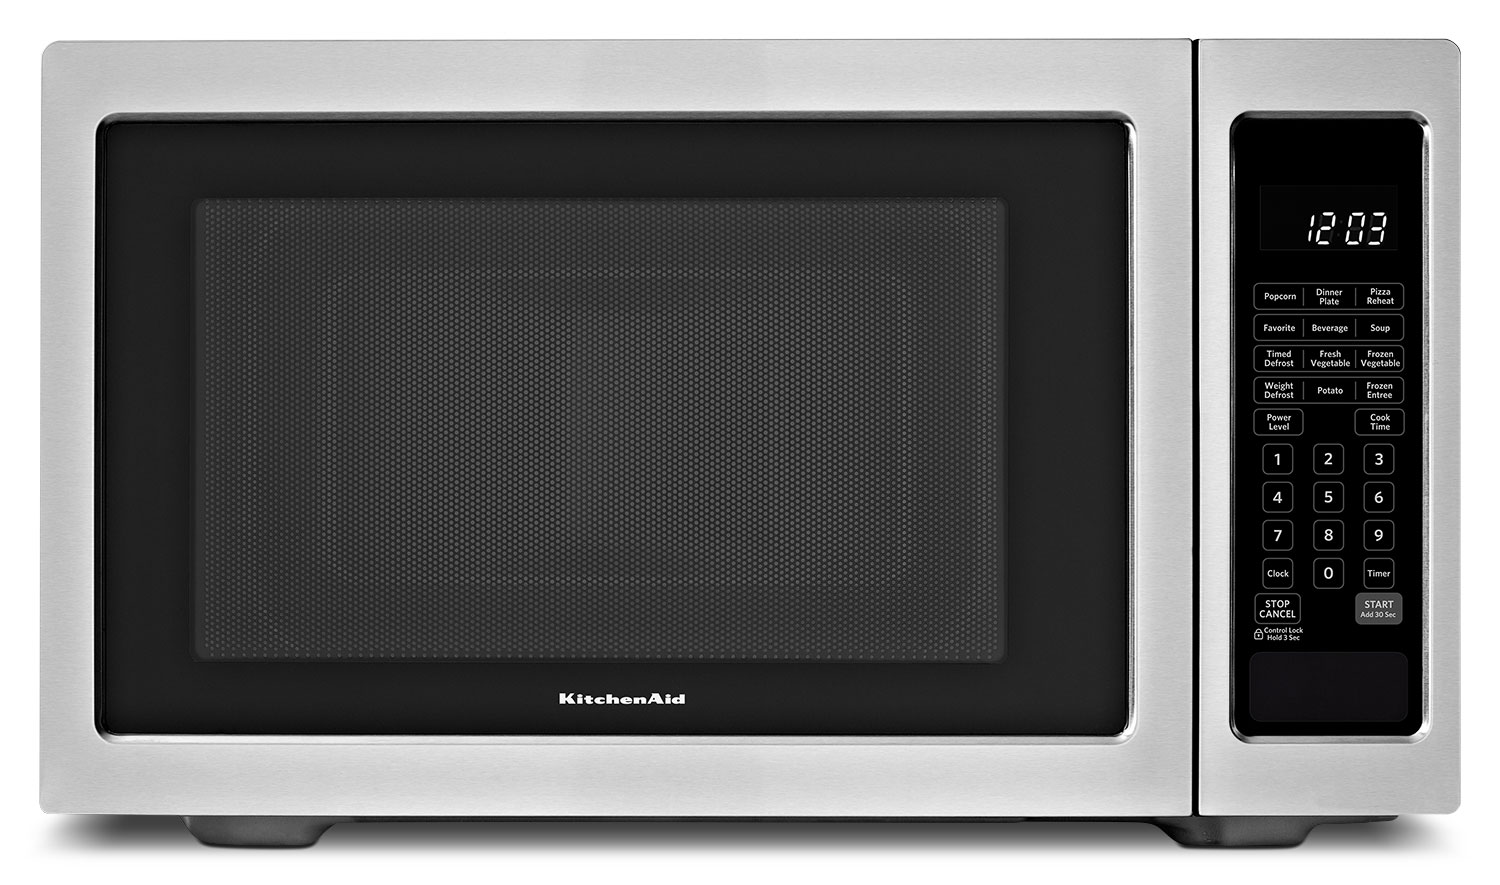 Cooking Products - KitchenAid Stainless Steel Countertop Microwave (1.6 Cu. Ft.) - YKCMS1655BS